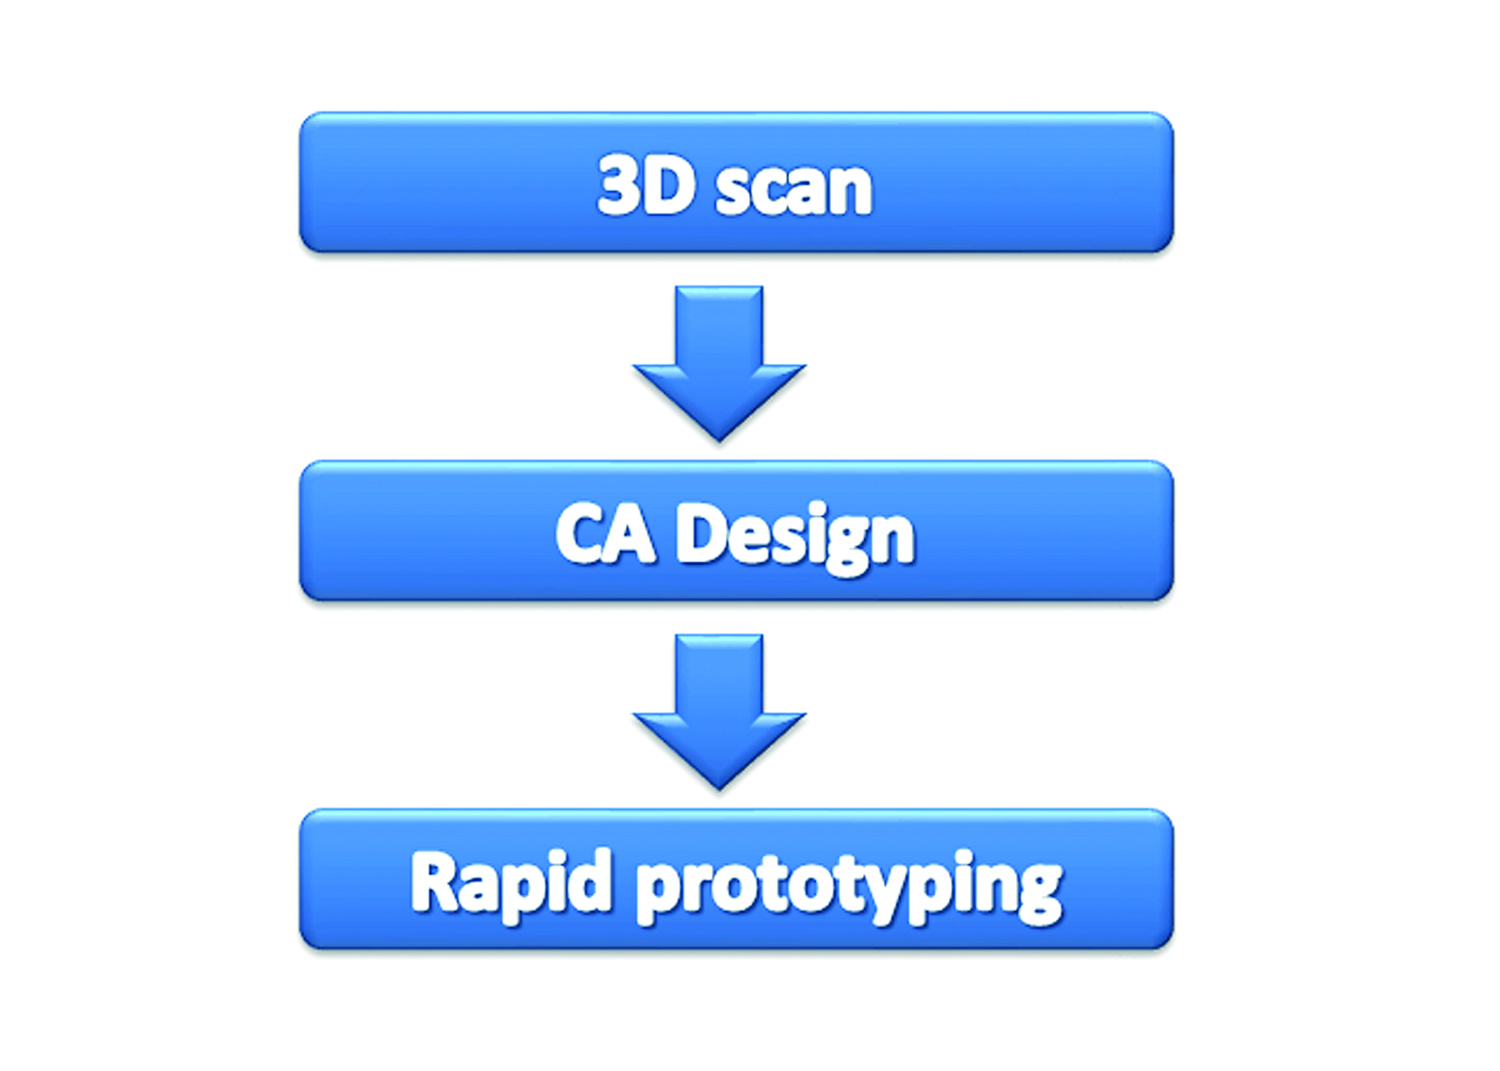 Established industry 3D workflow for the purpose of rapid prototyping.